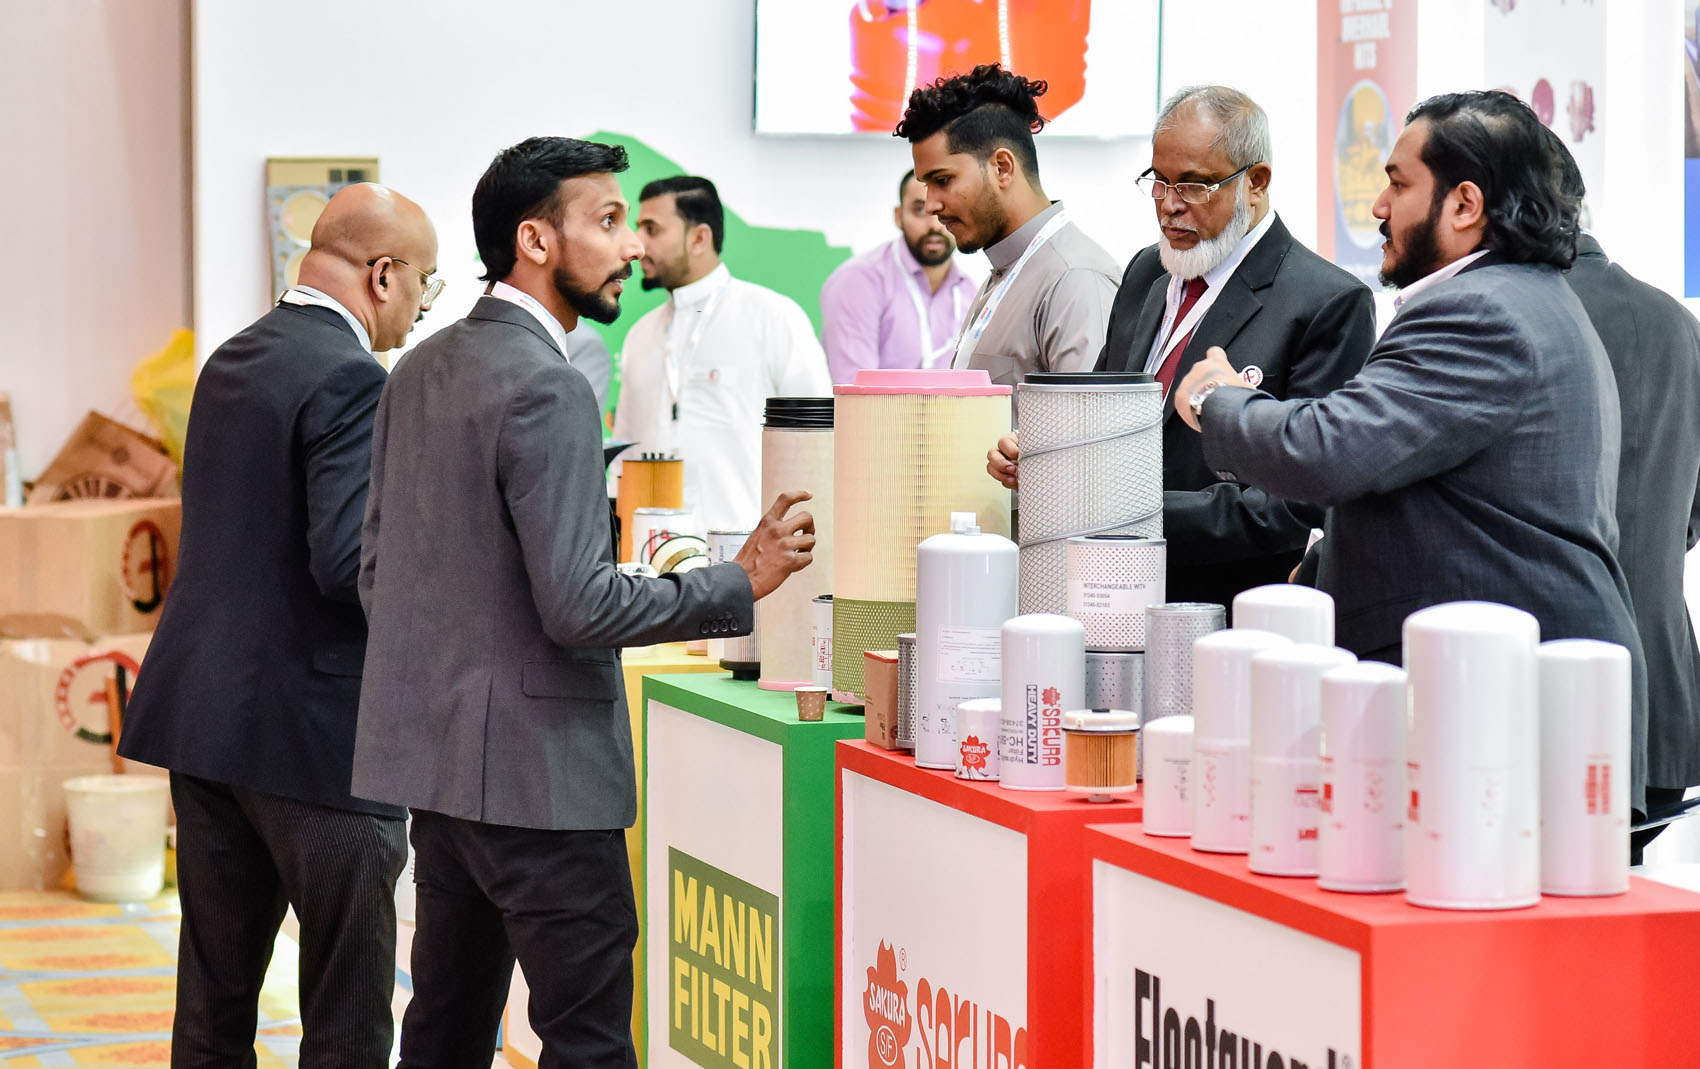 Exhibitors at Automechanika Dubai